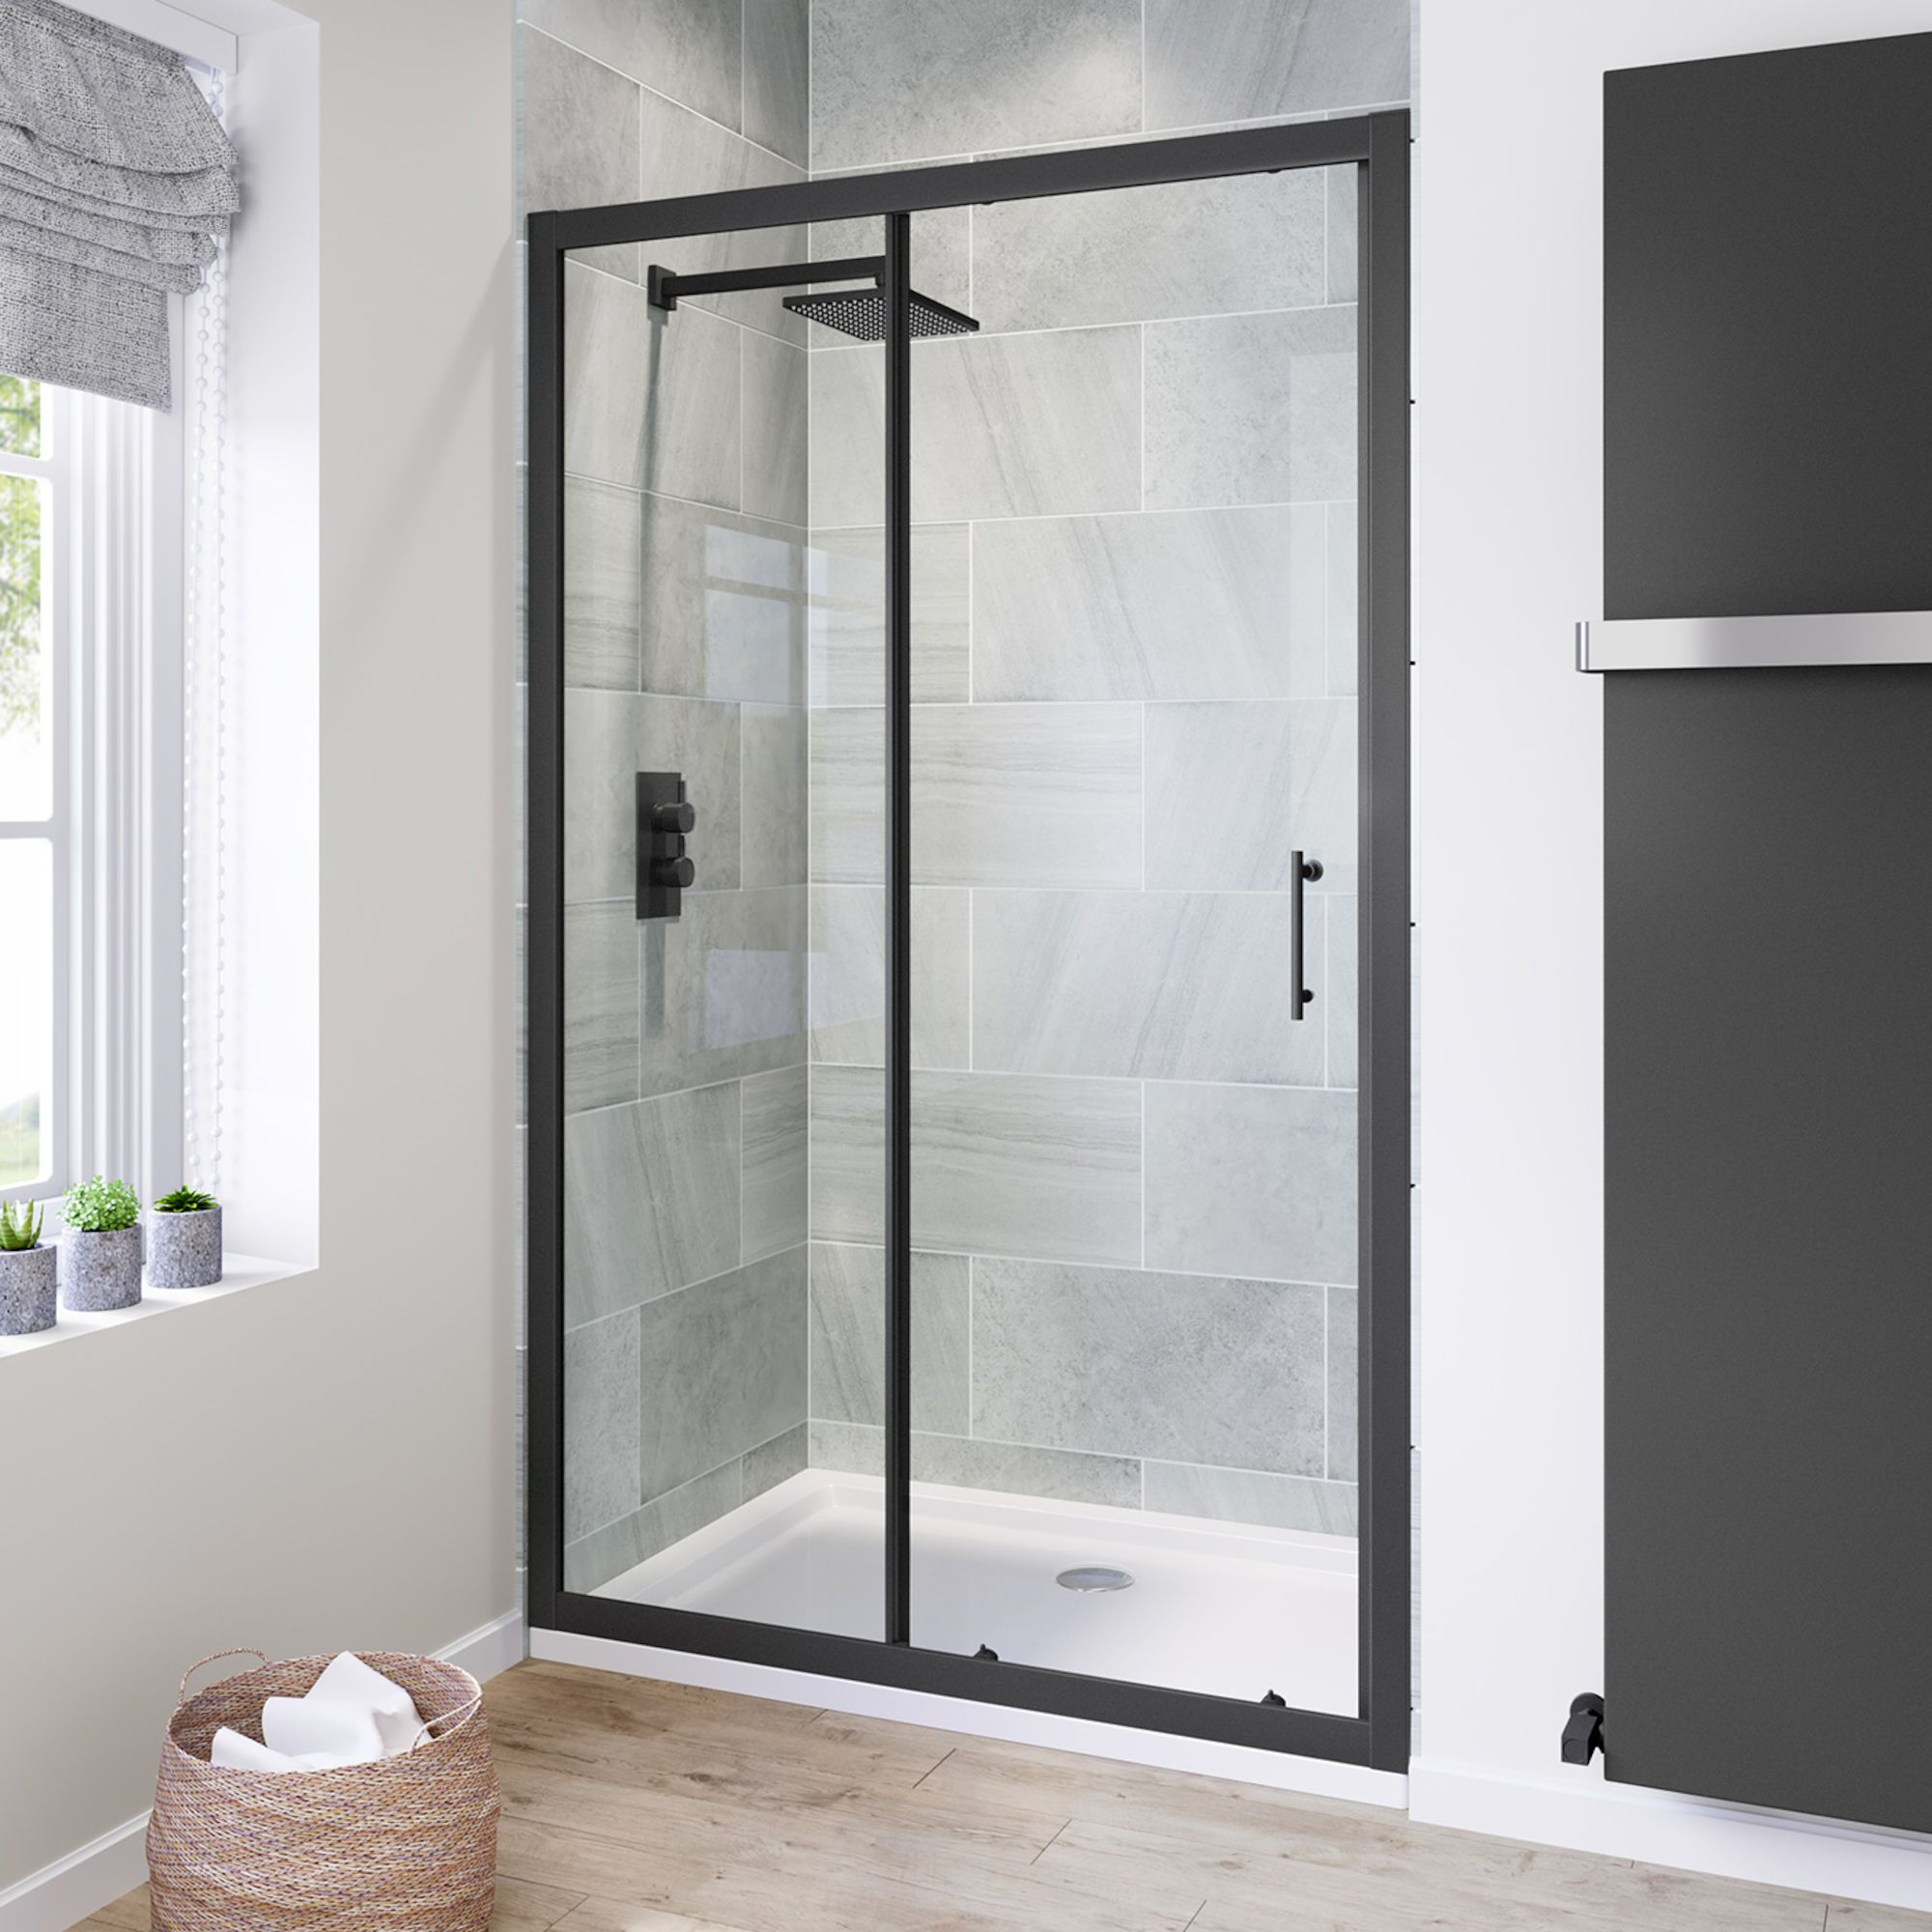 1200mm 6mm Black Frame Sliding Shower Door Shower Doors Black Shower Doors Framed Shower Enclosures